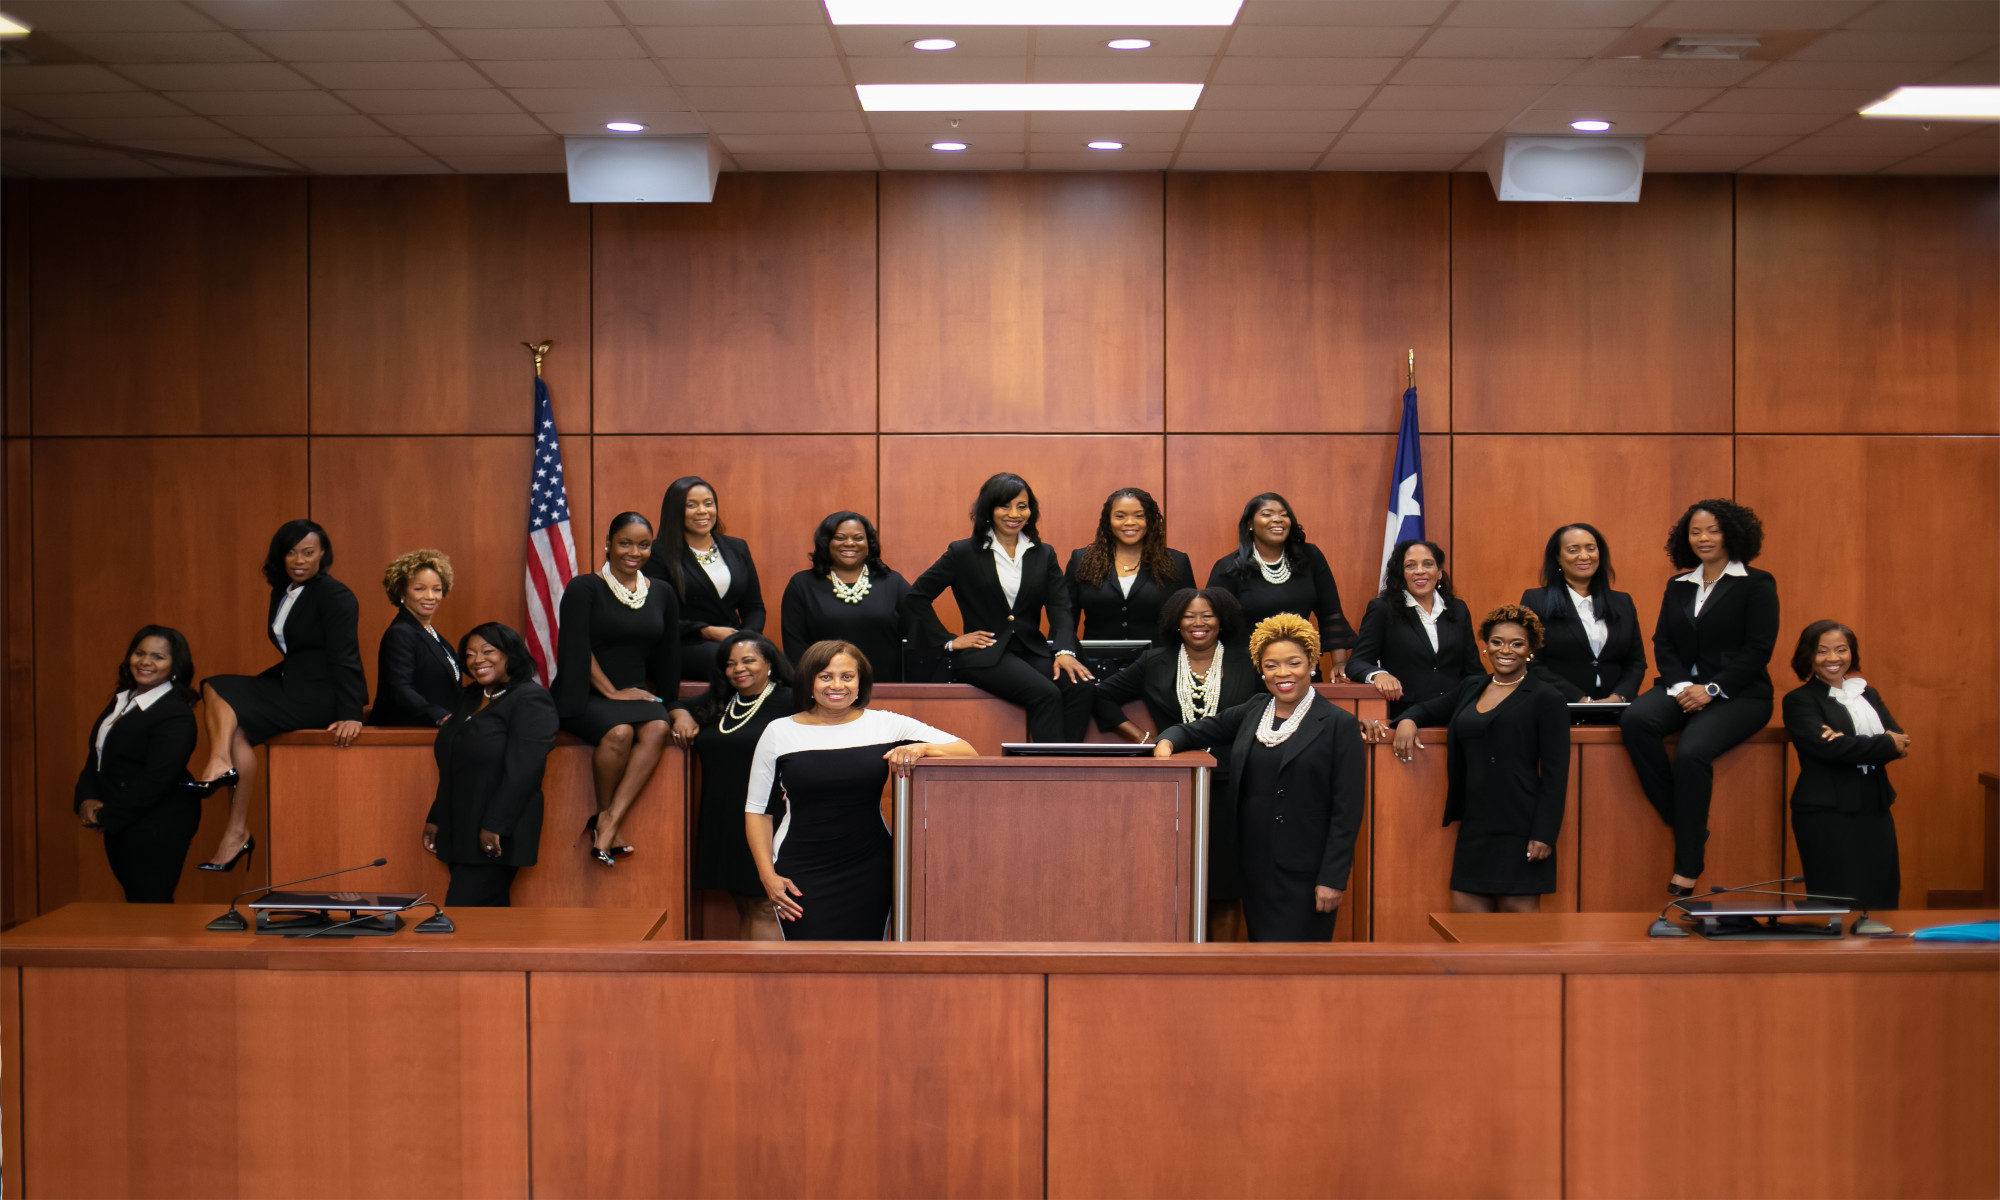 17 African American Judges Sworn In at Texas County